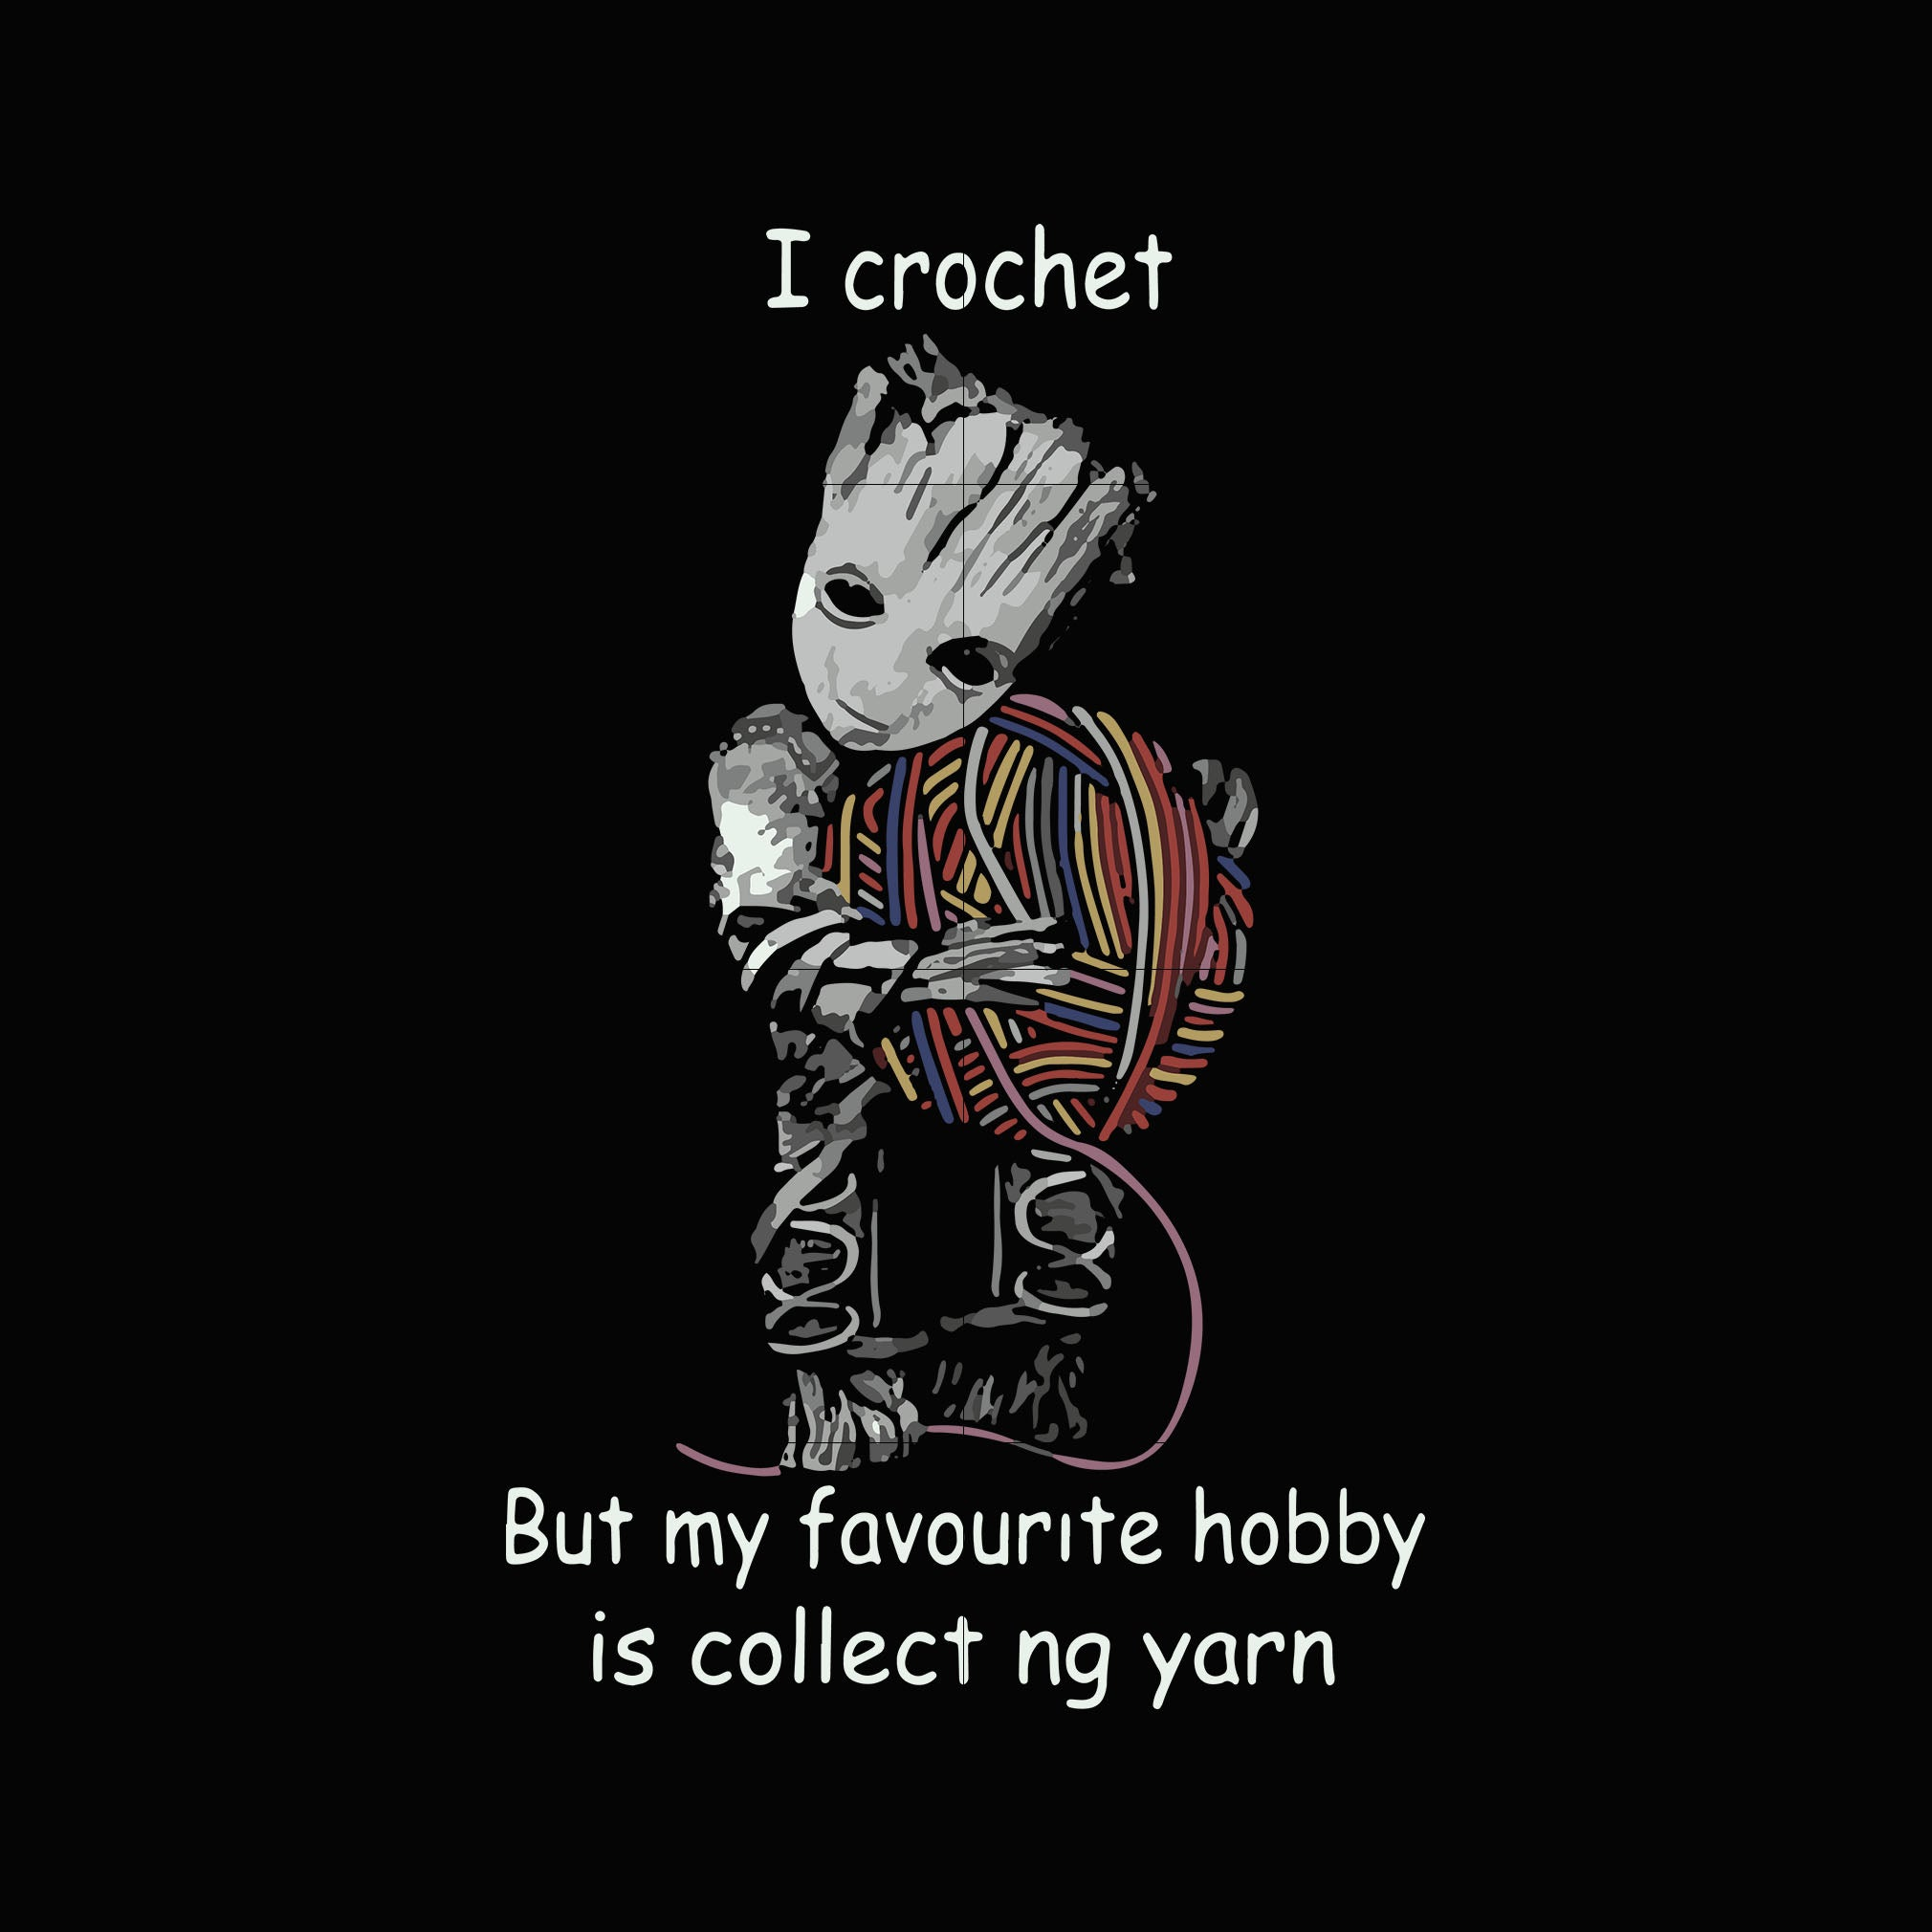 I crochet but my favorite hobby is collect ng yarn svg ,dxf,eps,png digital file